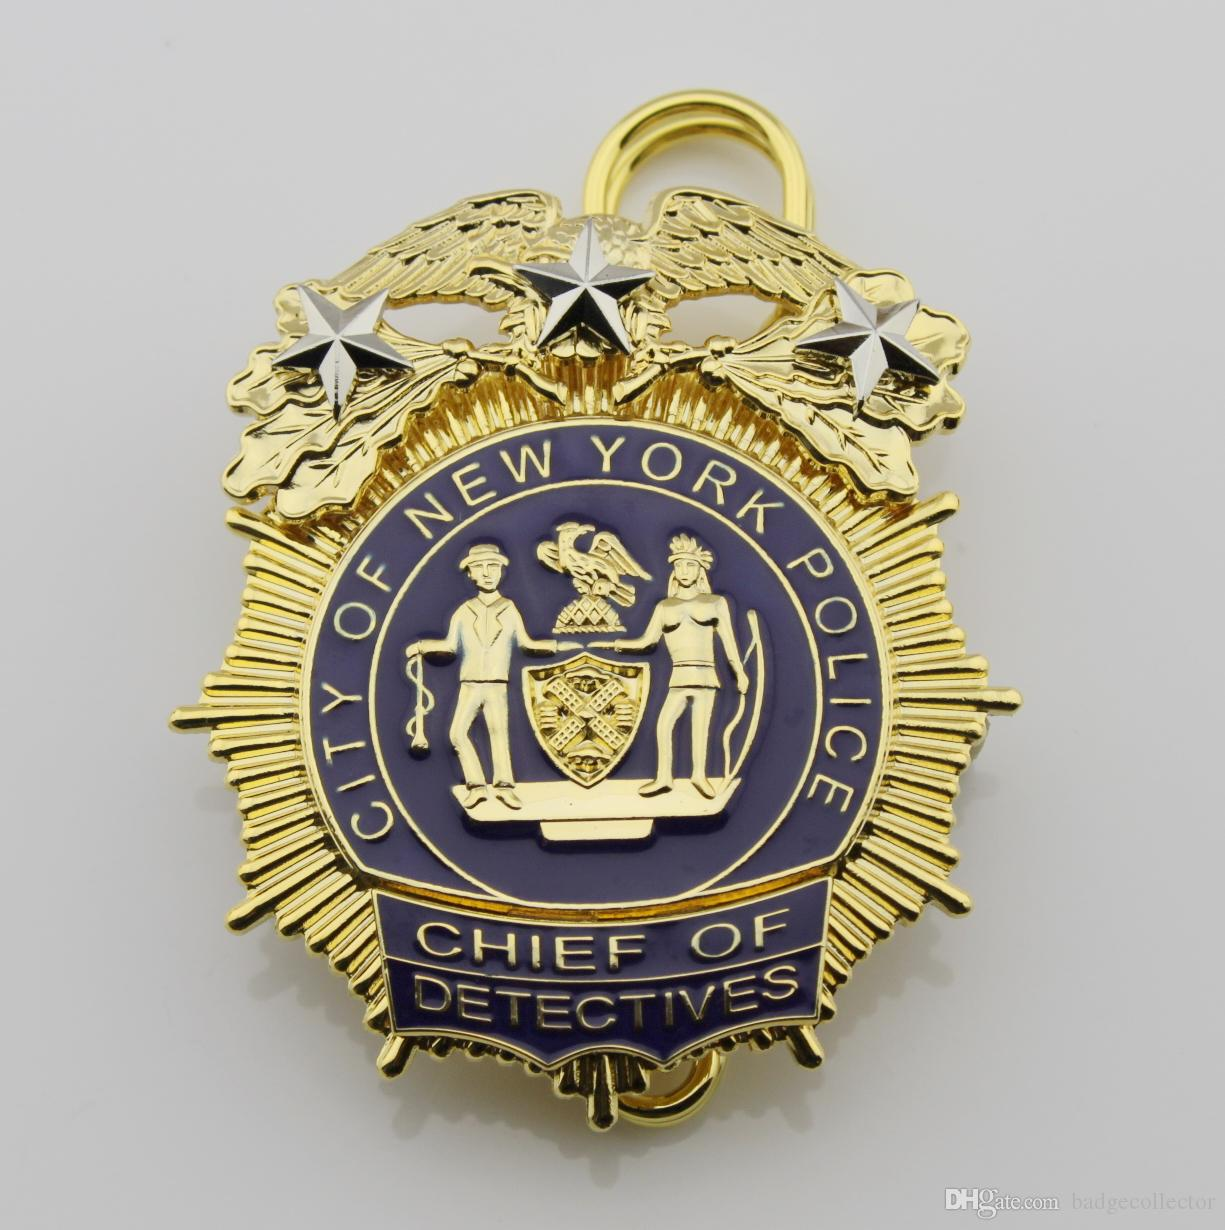 Replica Police Cop Metal Badge High Quality The New